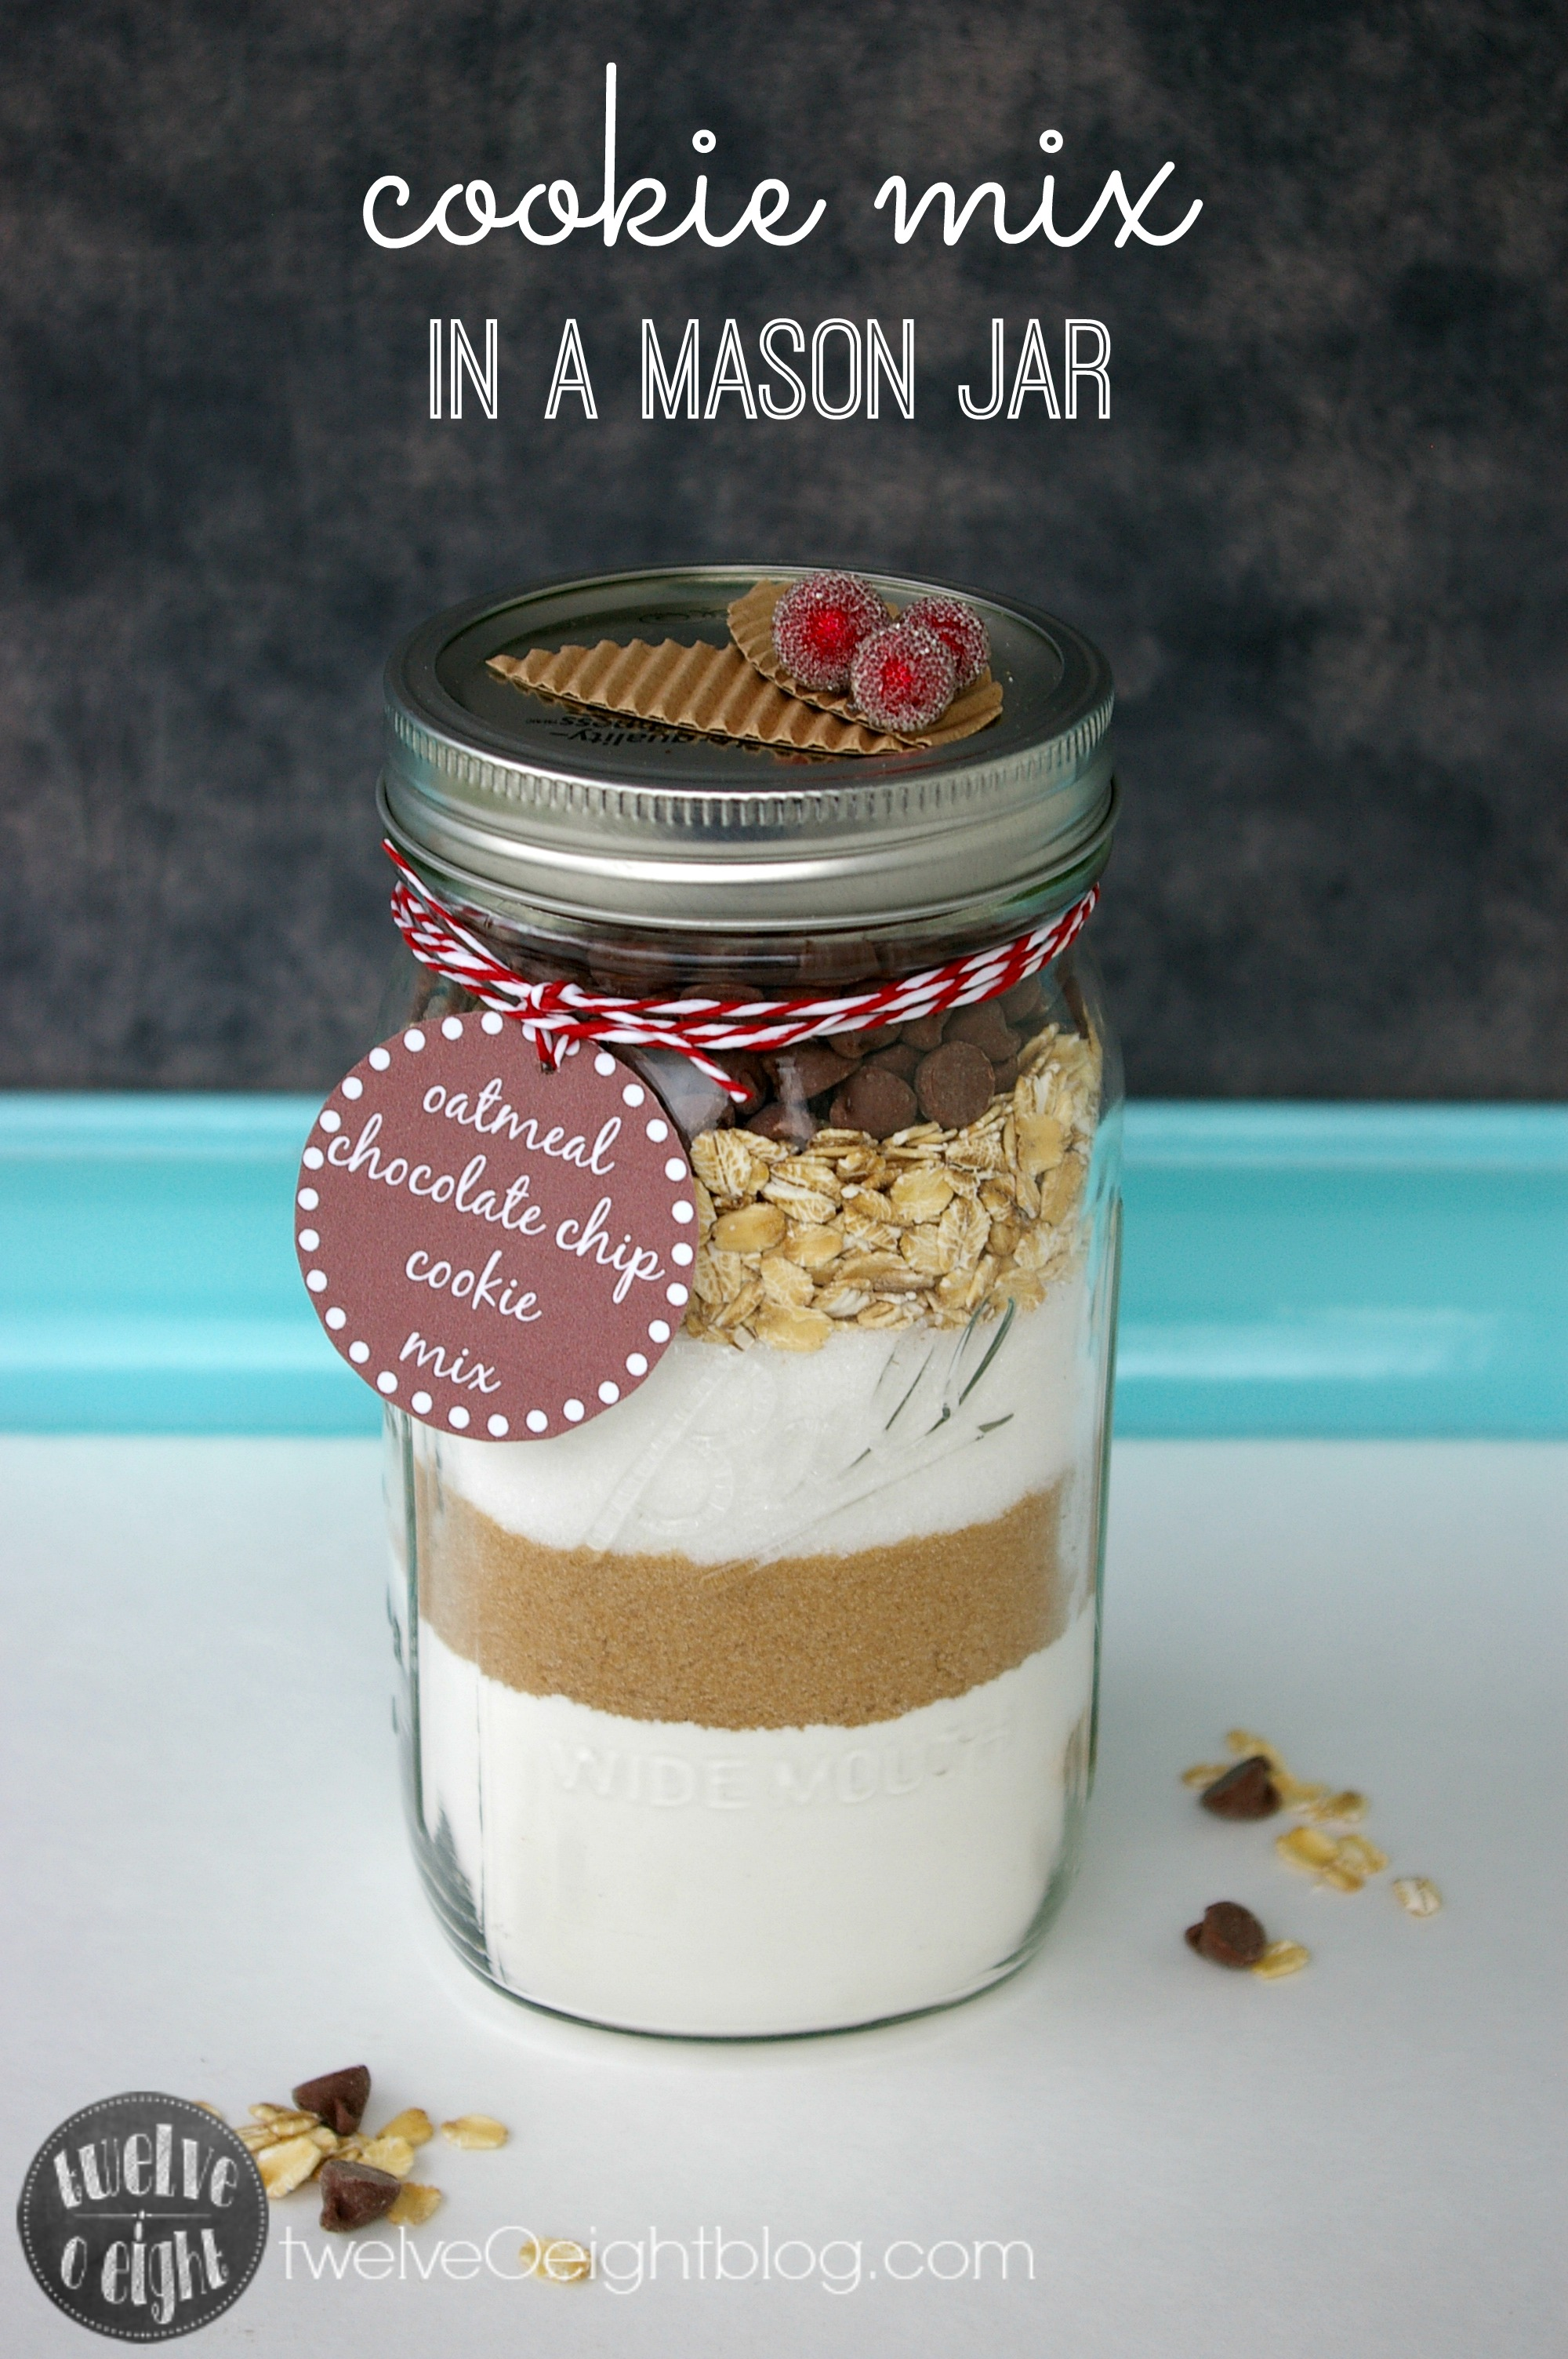 Cookie recipes in a jar 1 pint